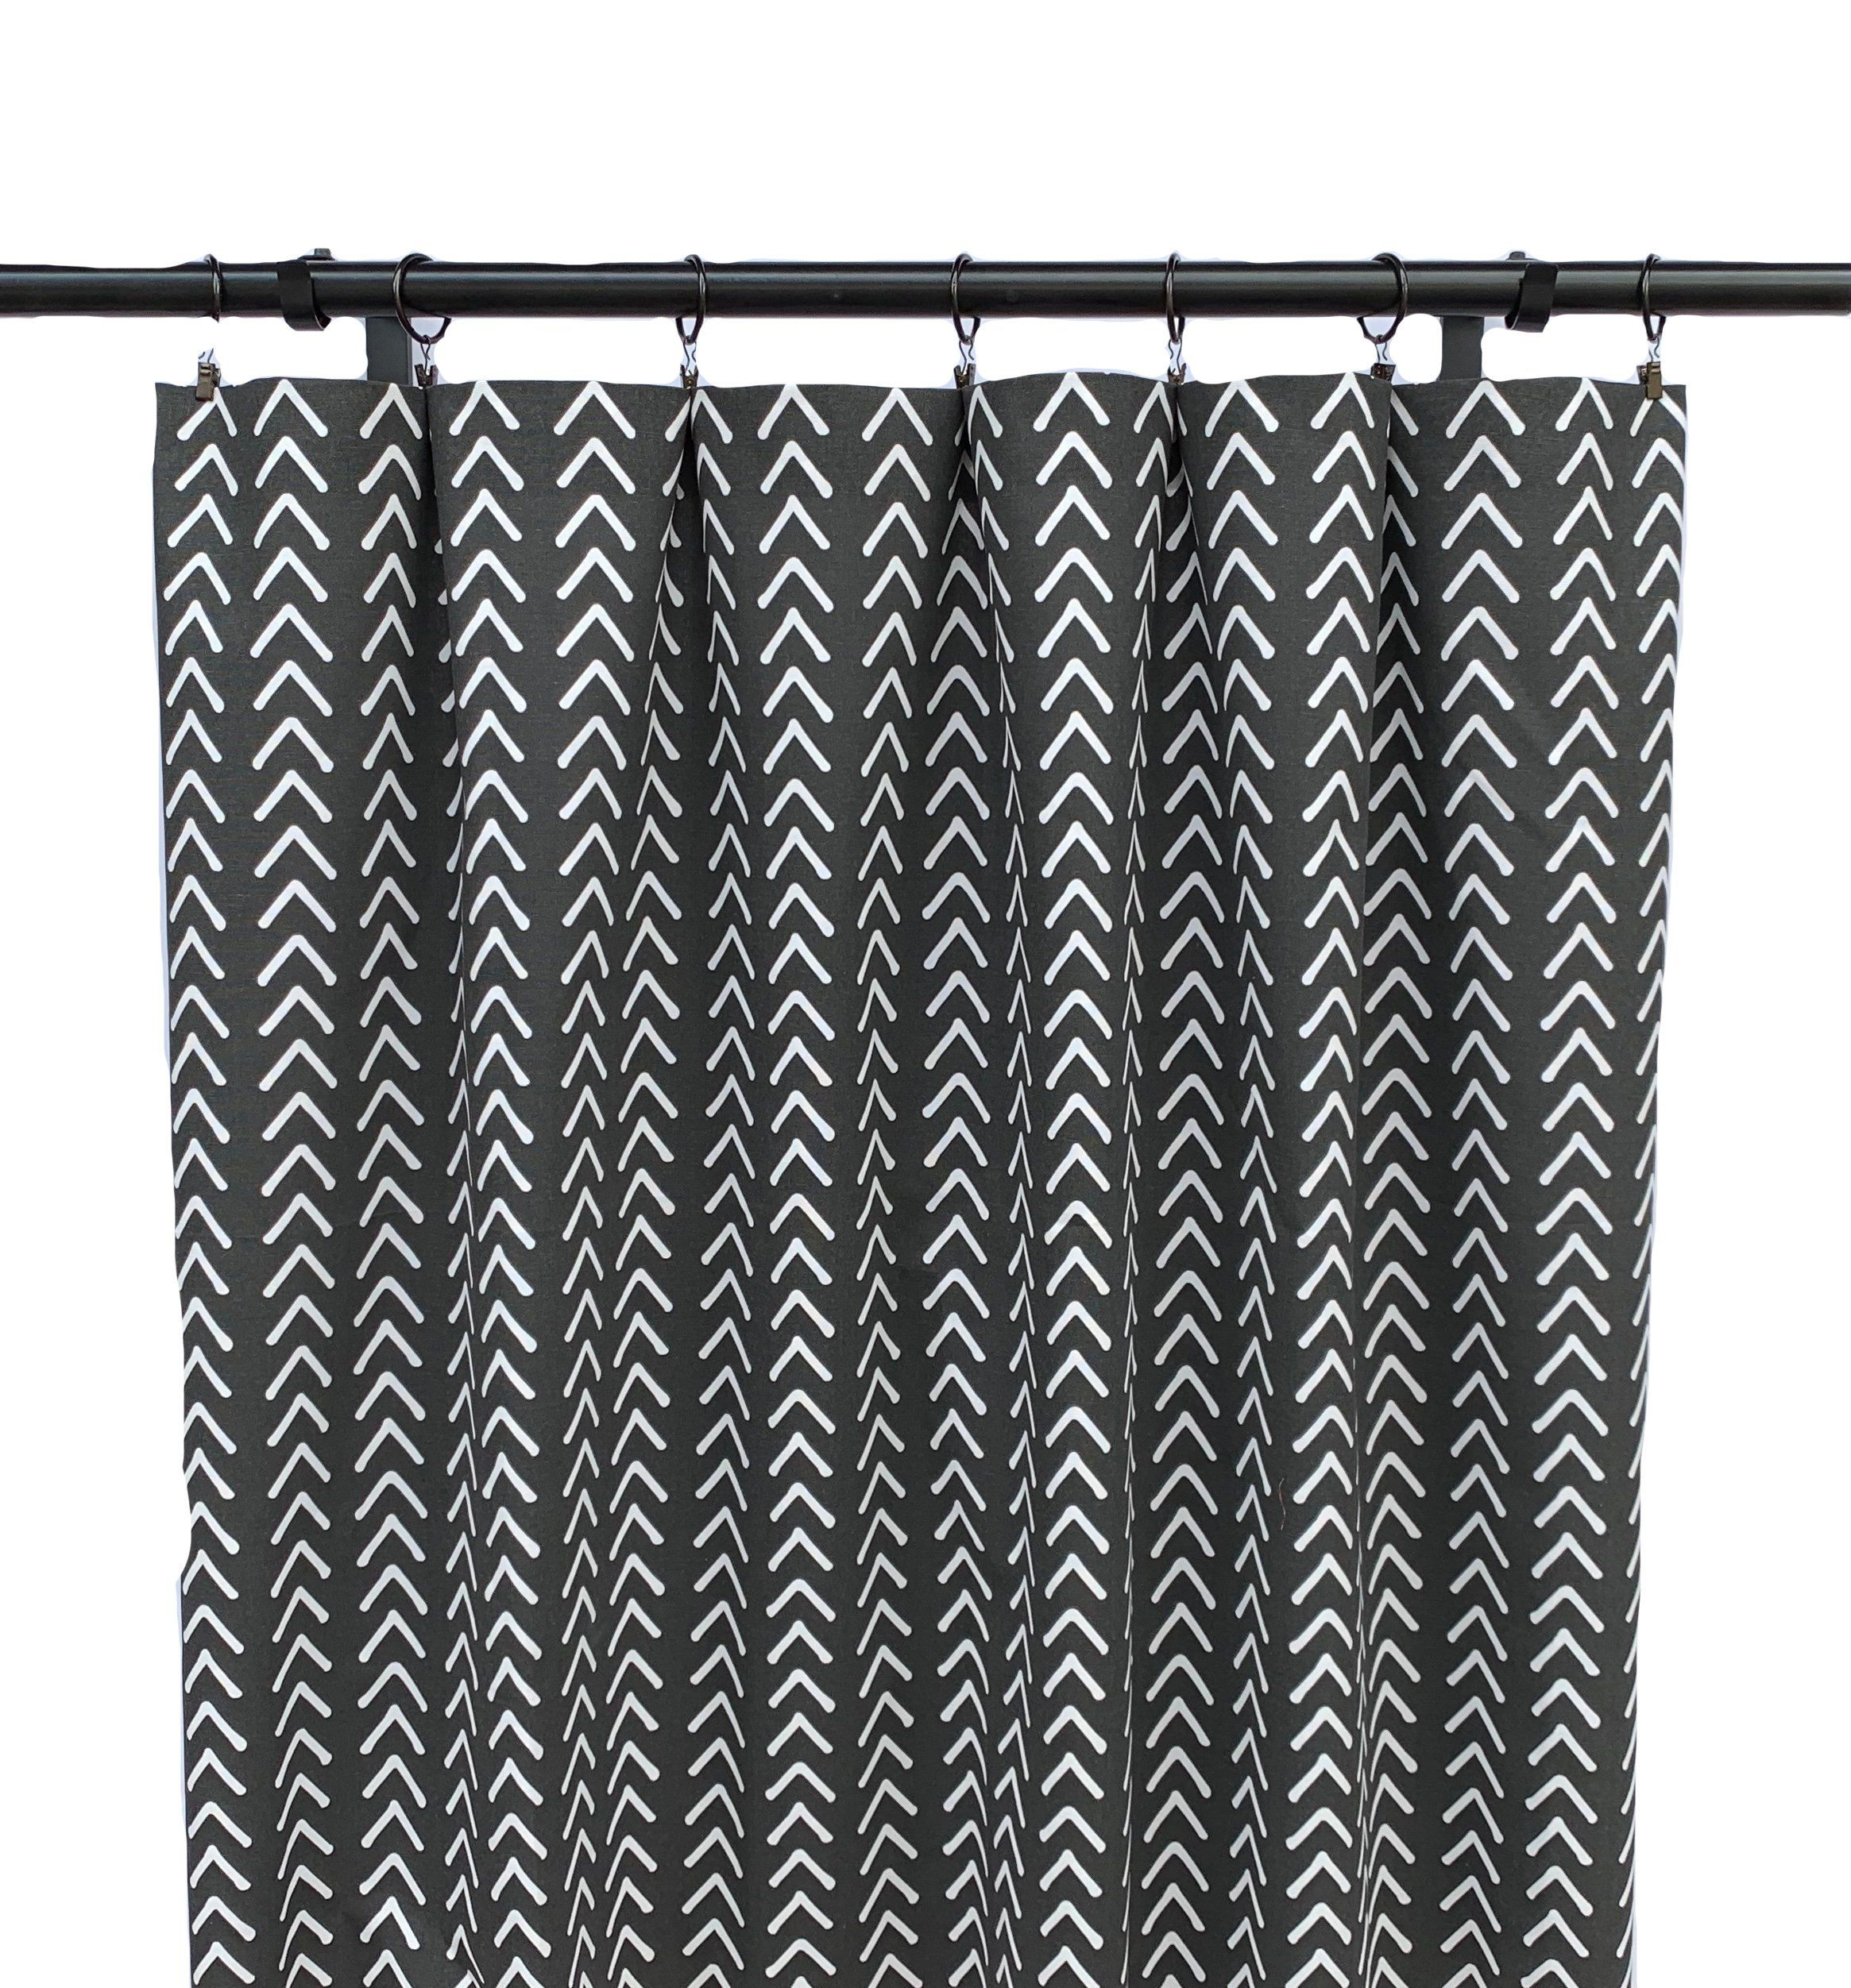 Black And White Boho Curtains Black Striped Curtain 2 Etsy Geometric Curtains Boho Curtains Arrow Curtains